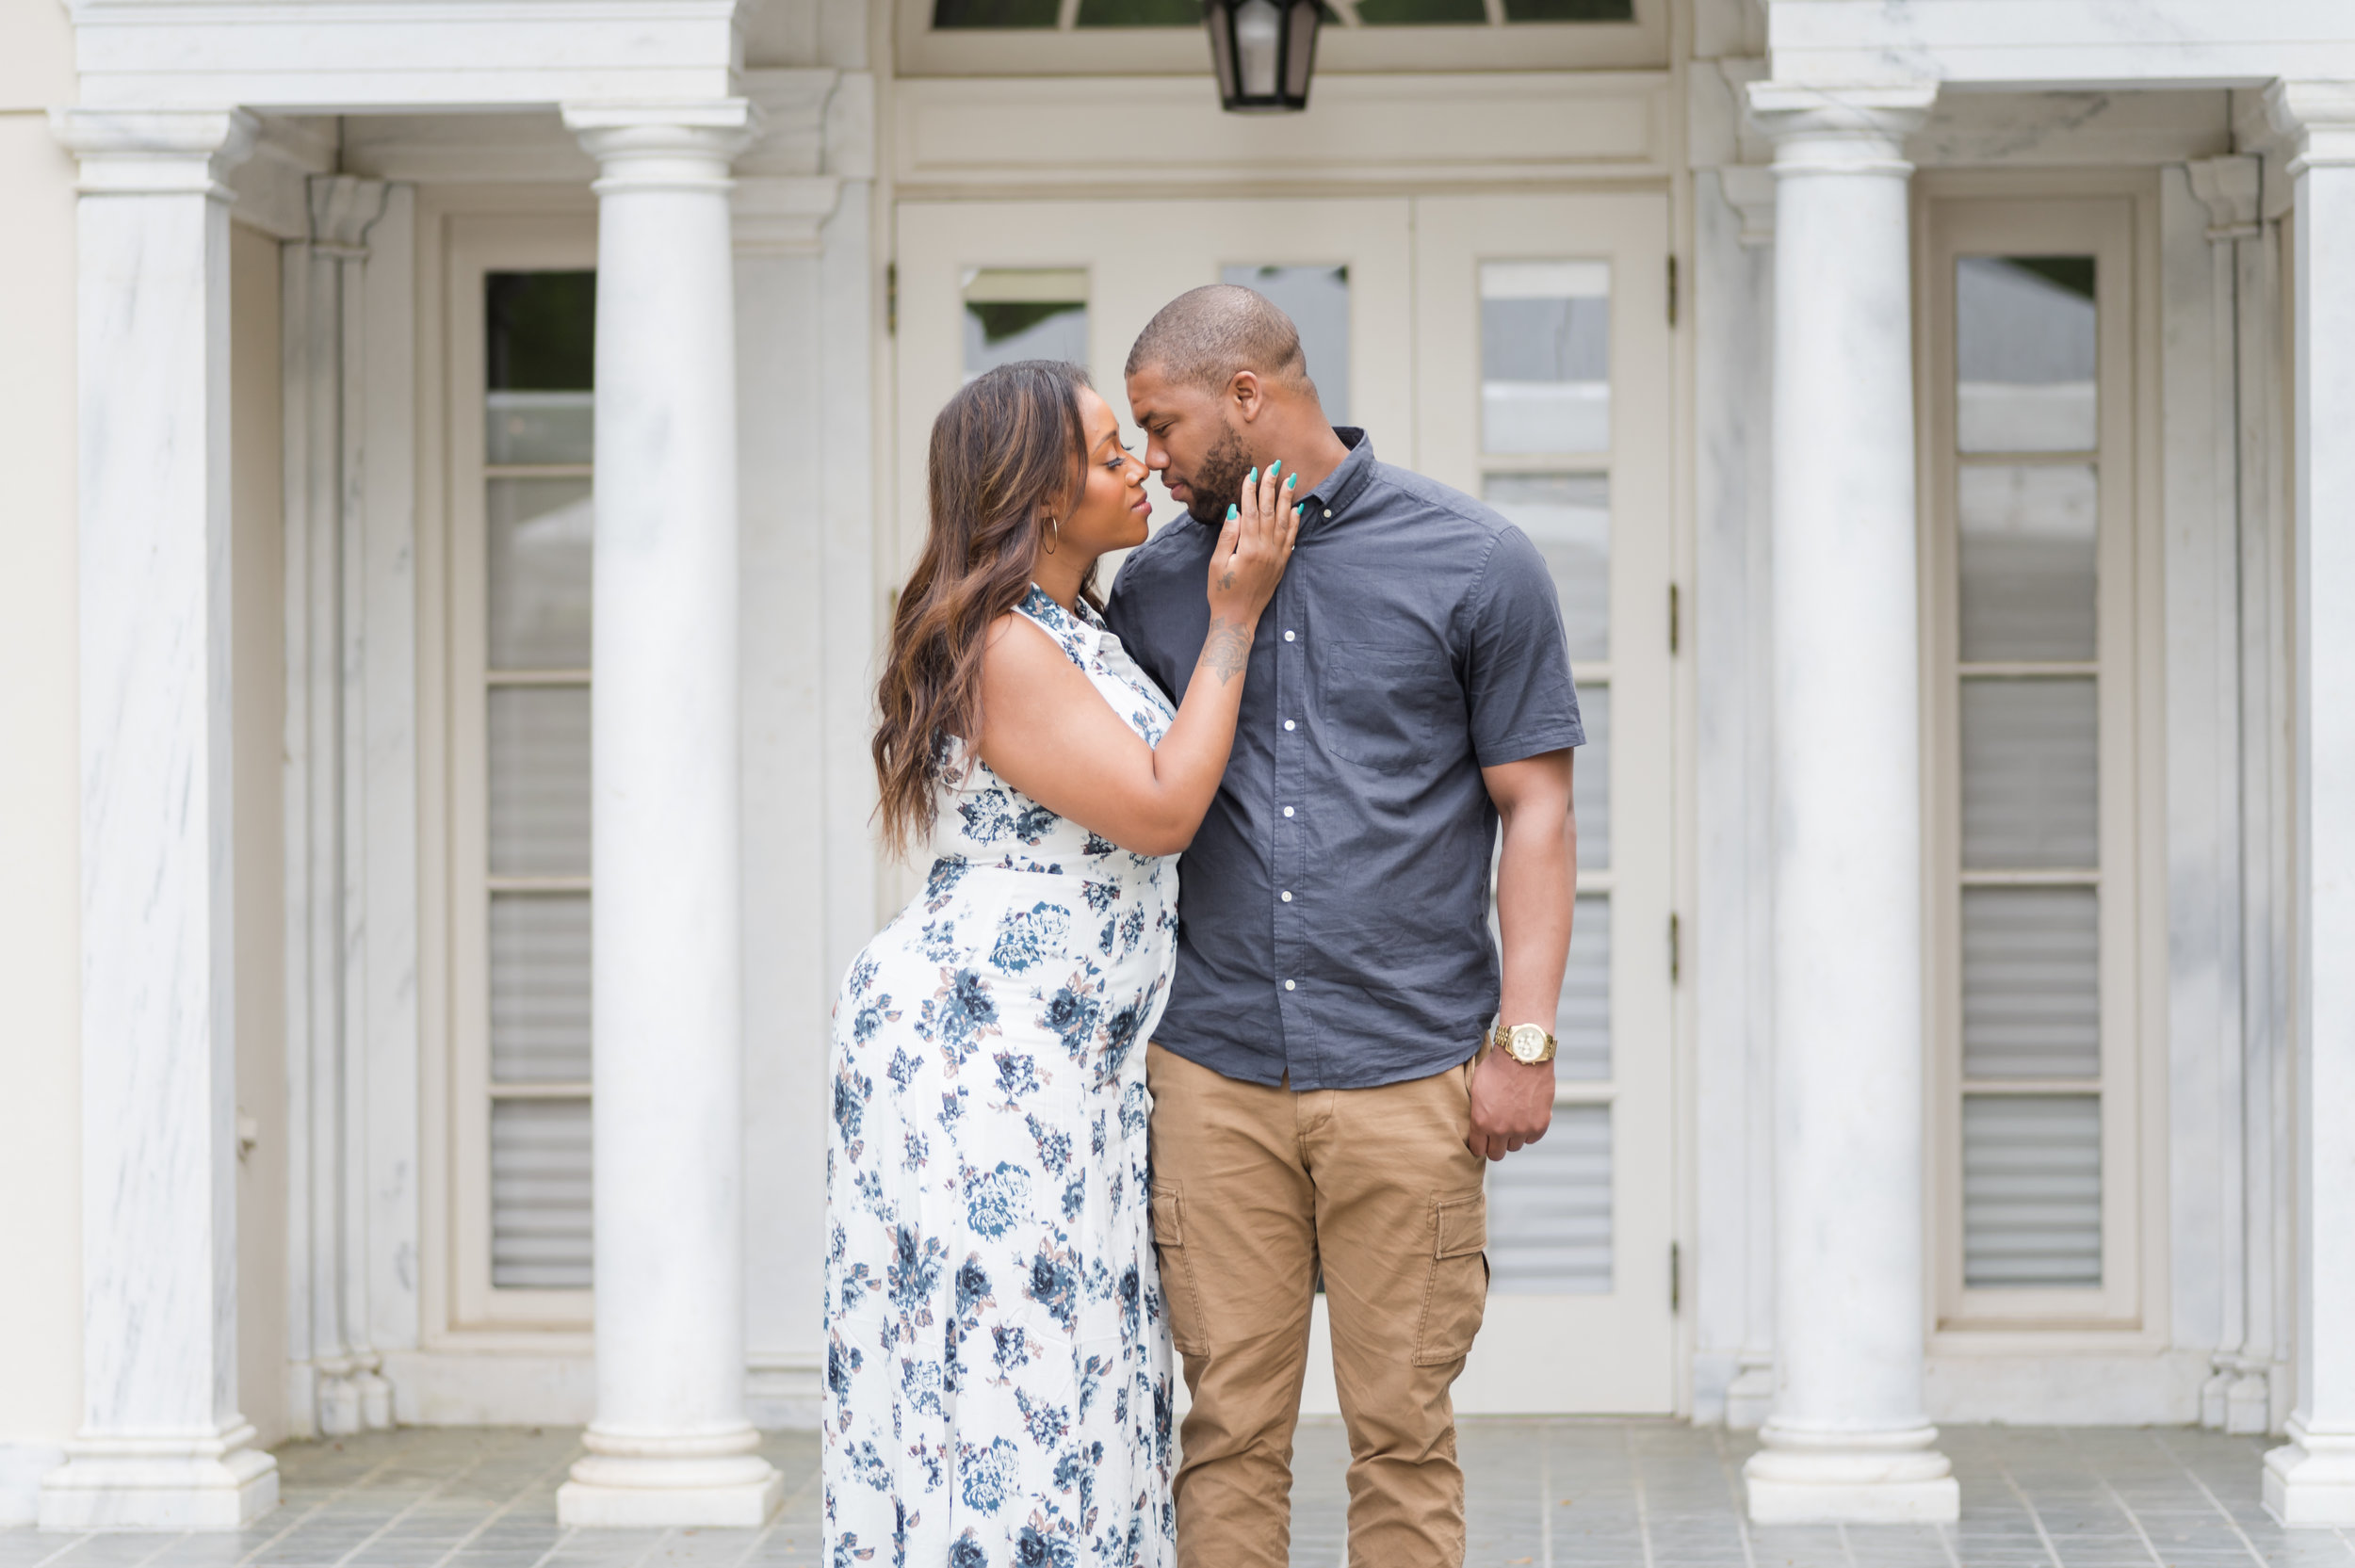 Cater Woolford Gardens Engagement Session.jpg